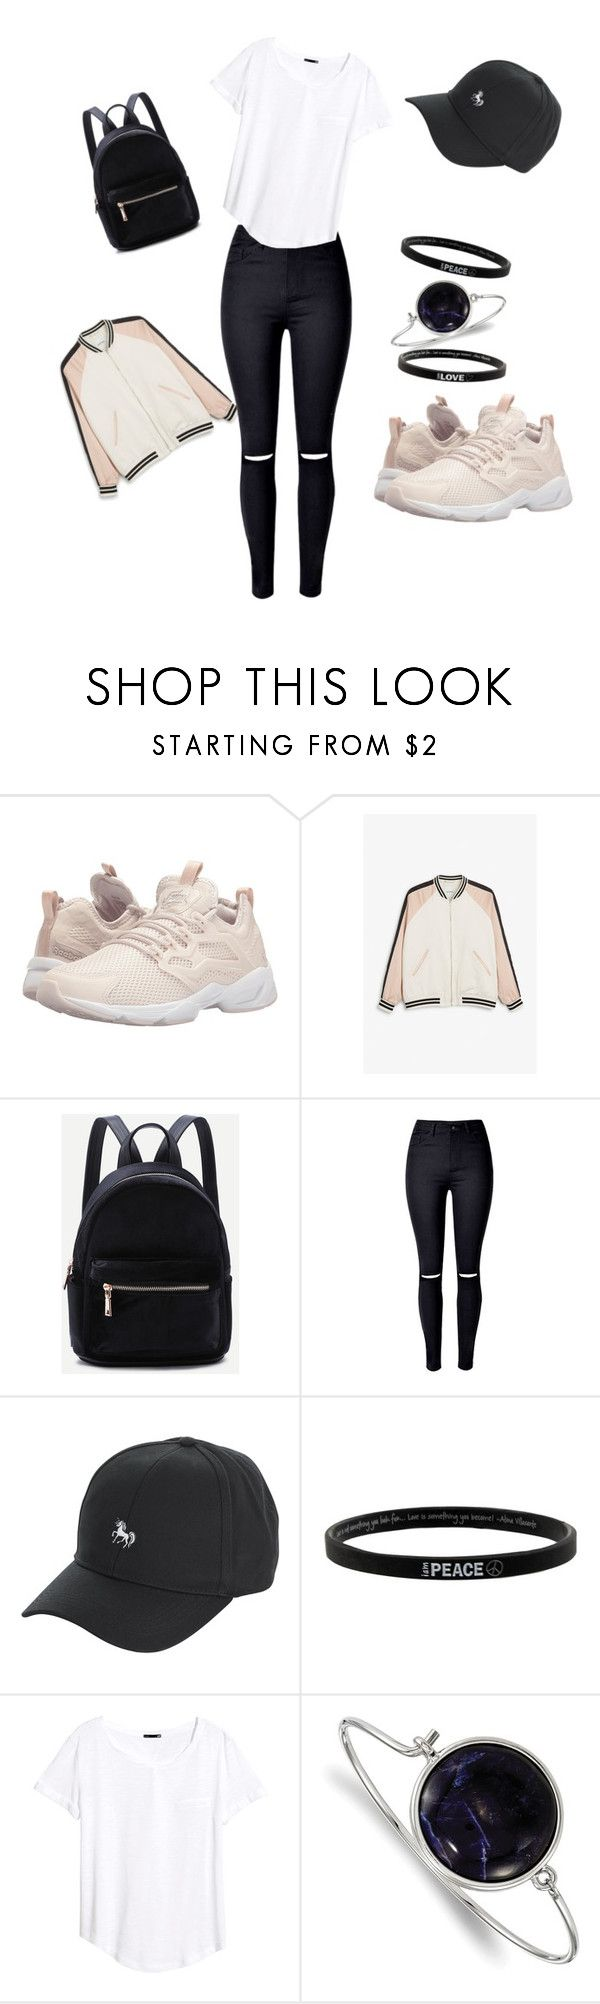 """""""blackpink"""" by ko-mi-ka ❤ liked on Polyvore featuring Reebok Lifestyle, Monki, WithChic, Peace Love World, H&M and 1928"""